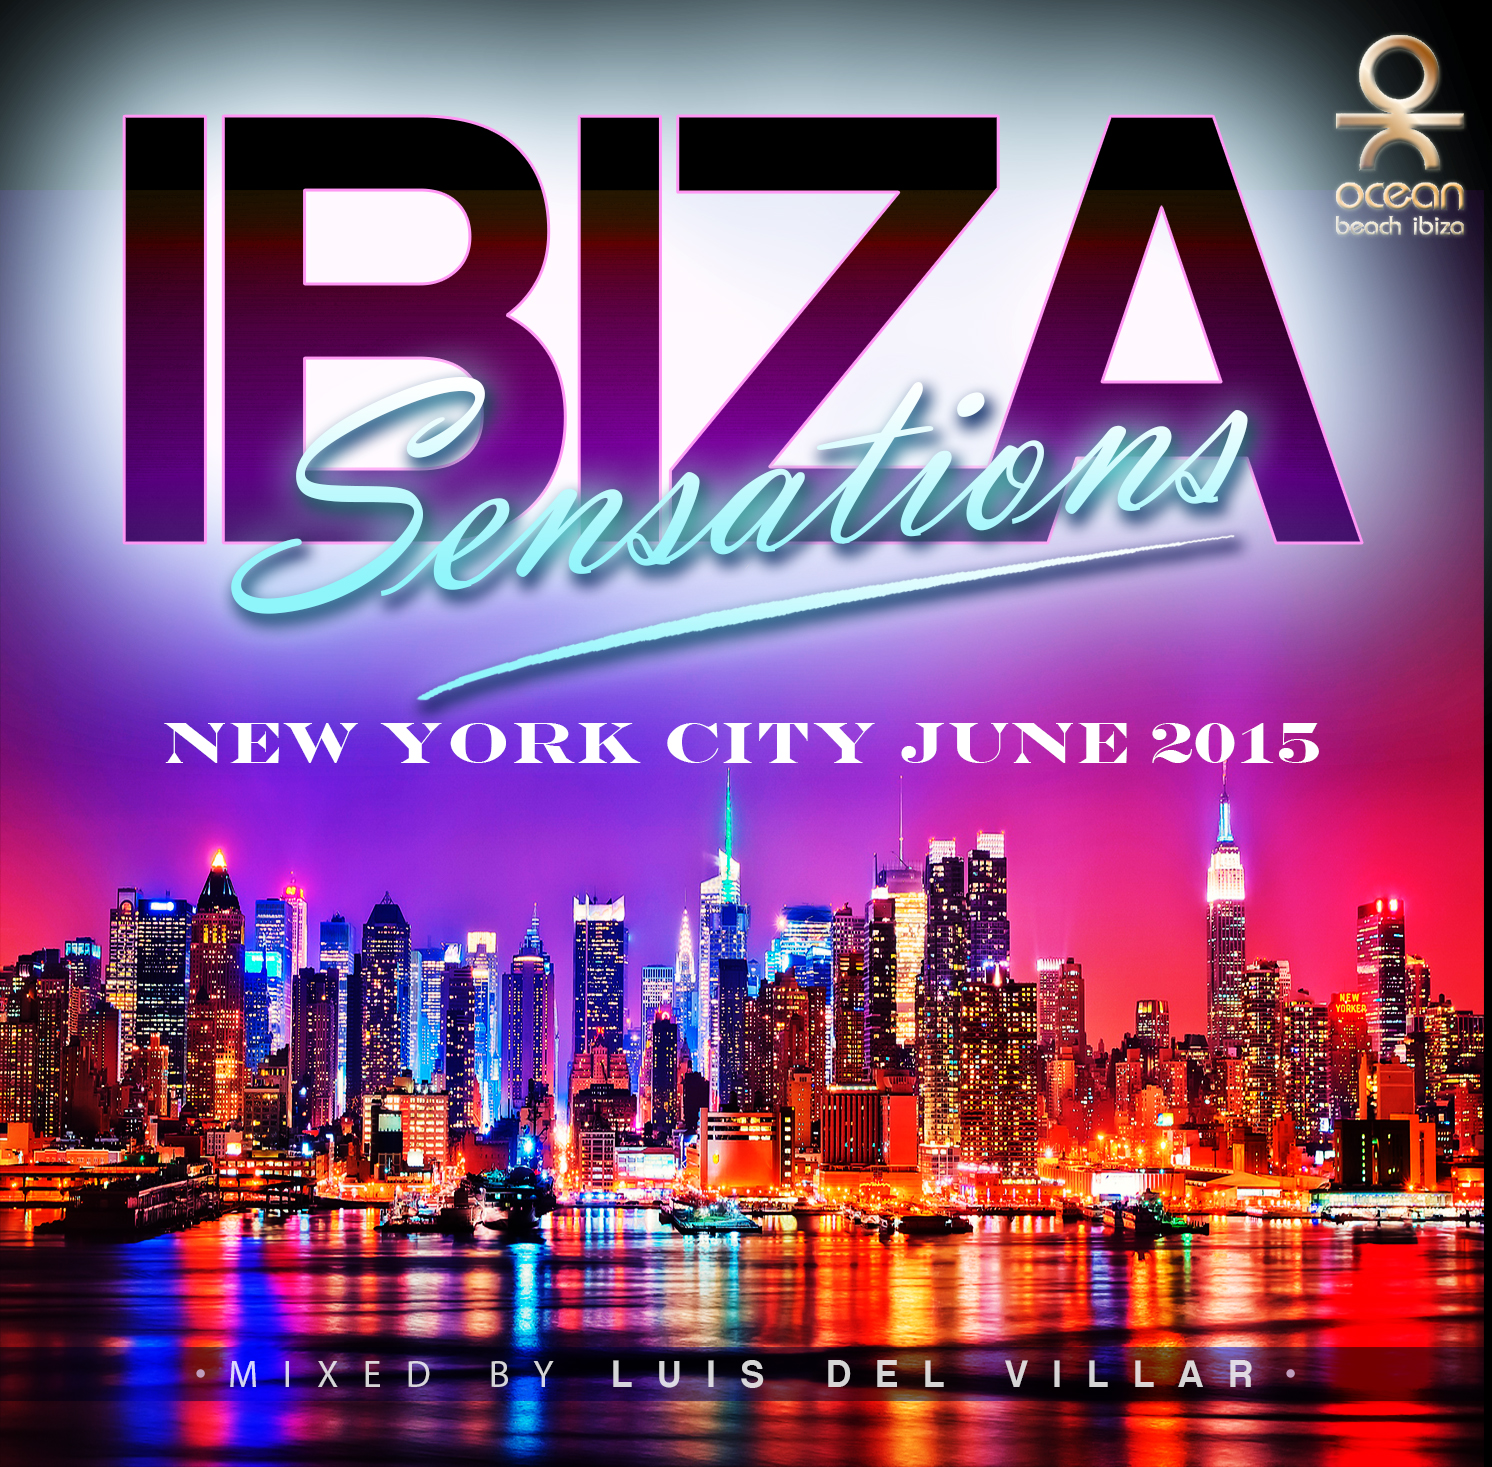 Artwork for Ibiza Sensations 118 @ Club Baroque, Astoria - New York